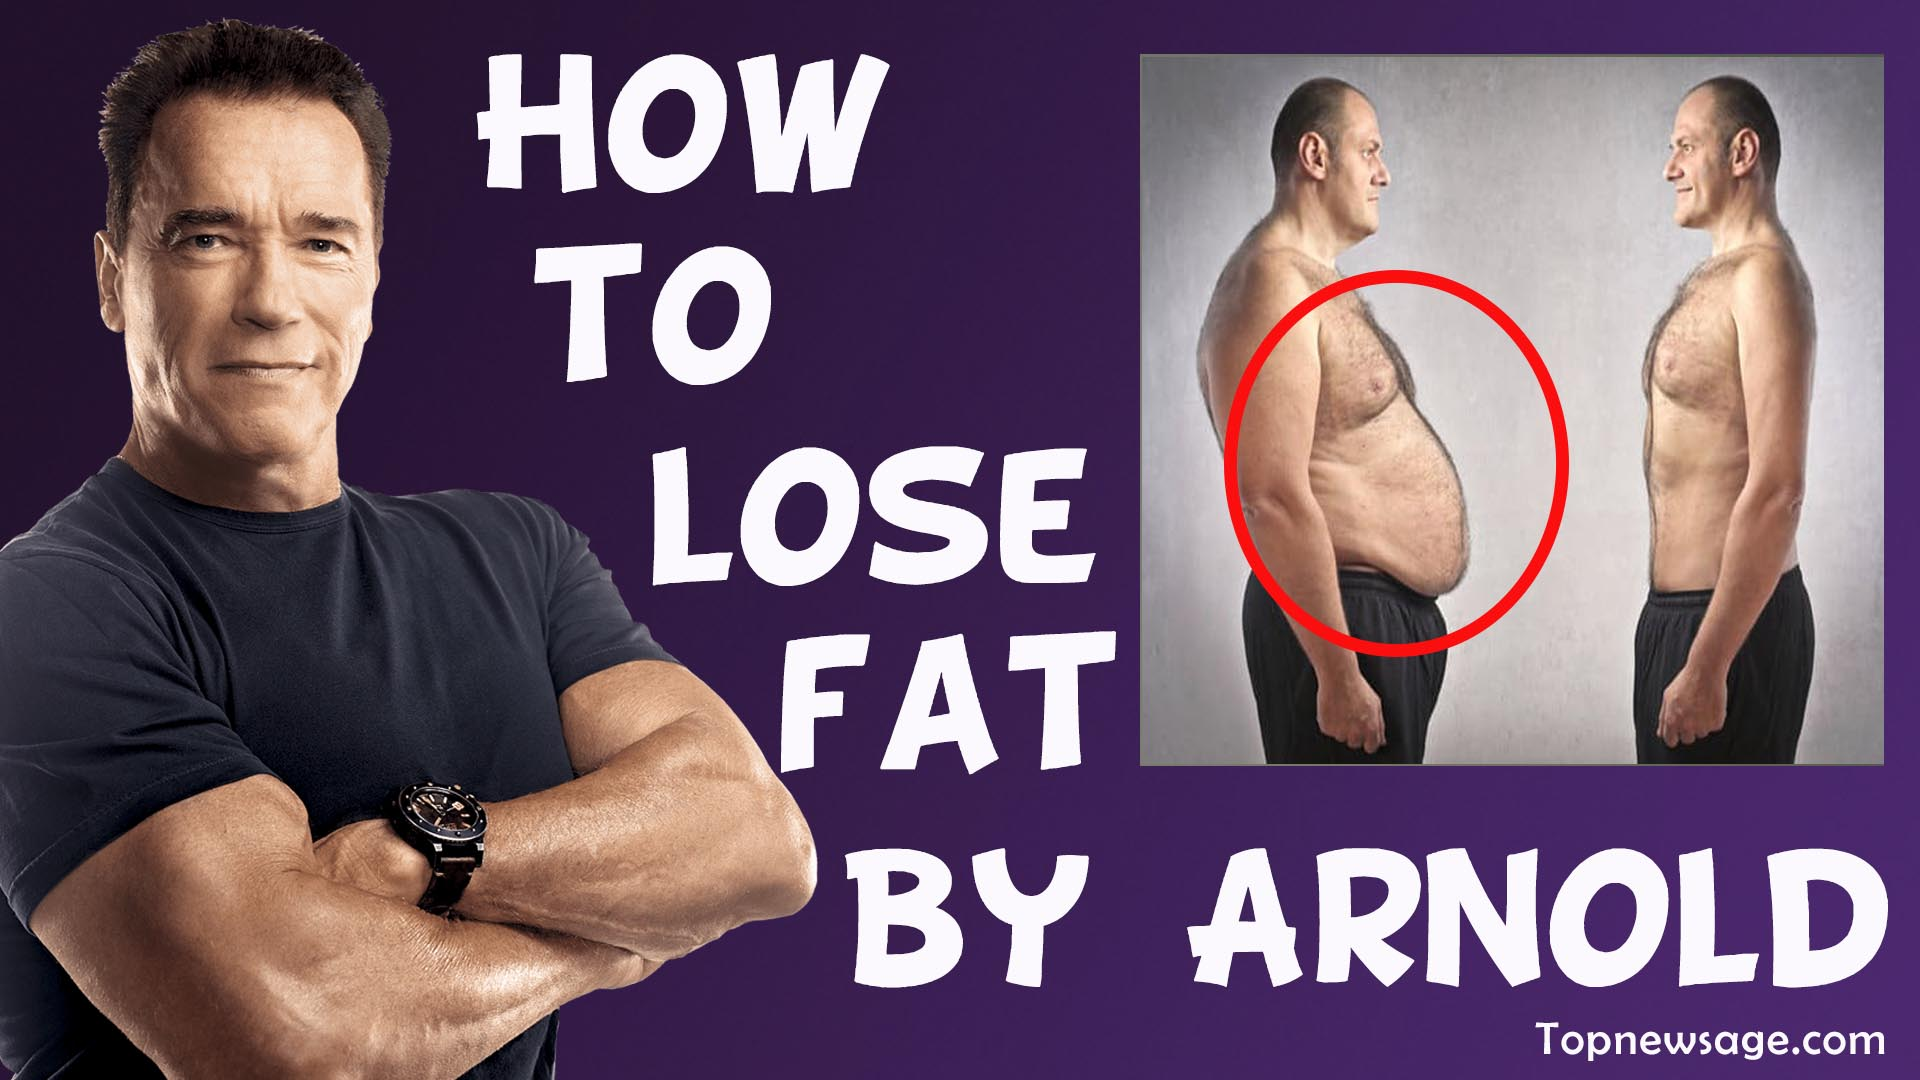 Fastest way to lose weight by arnold schwarzenegger interview fastest way to lose weight by arnold schwarzenegger interview topnewsage malvernweather Image collections